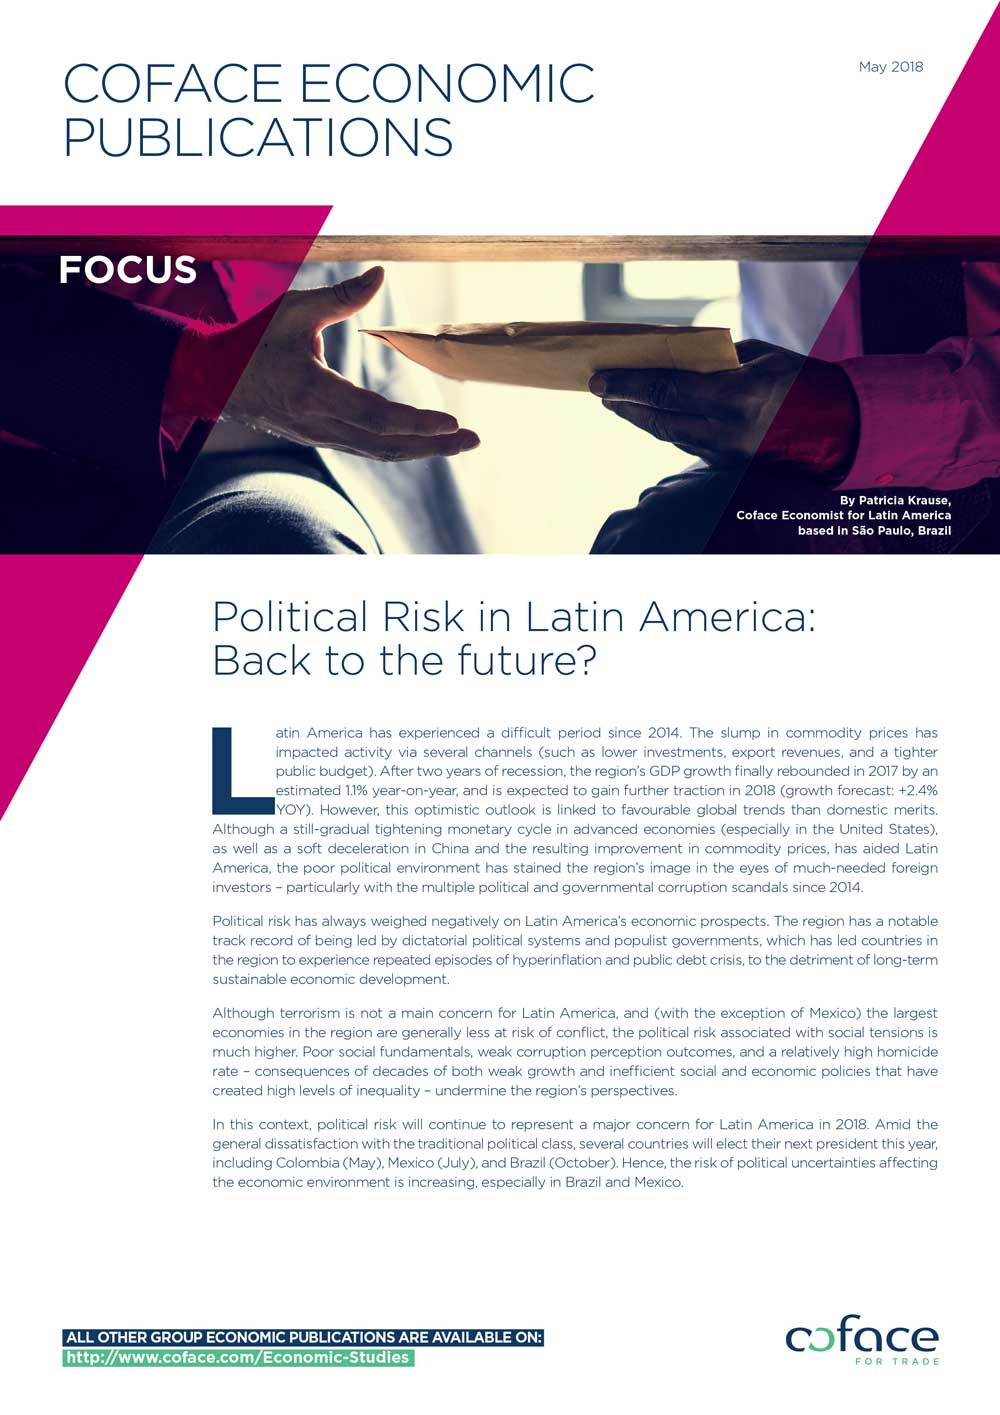 Political Risk in Latin America: Back to the future?